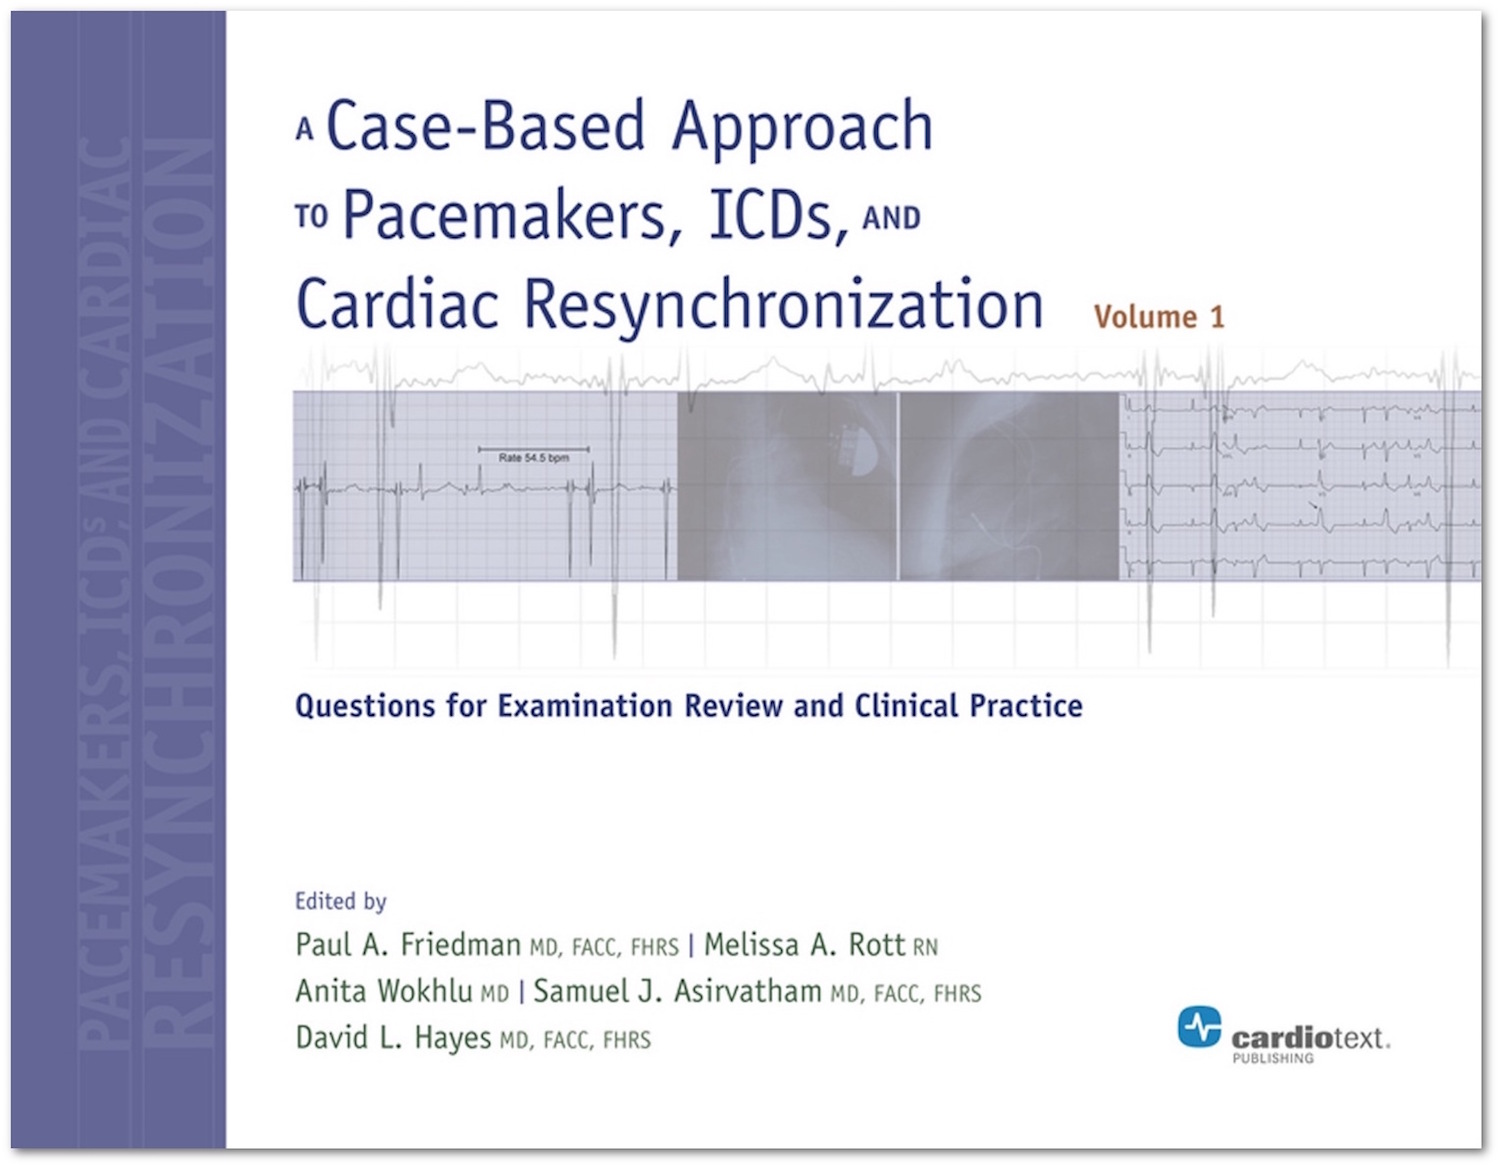 A Case-Based Approach to Pacemakers, ICDs, and Cardiac Resynchronization: Questions for Examination Review and Clinical Practice [Volume 1]